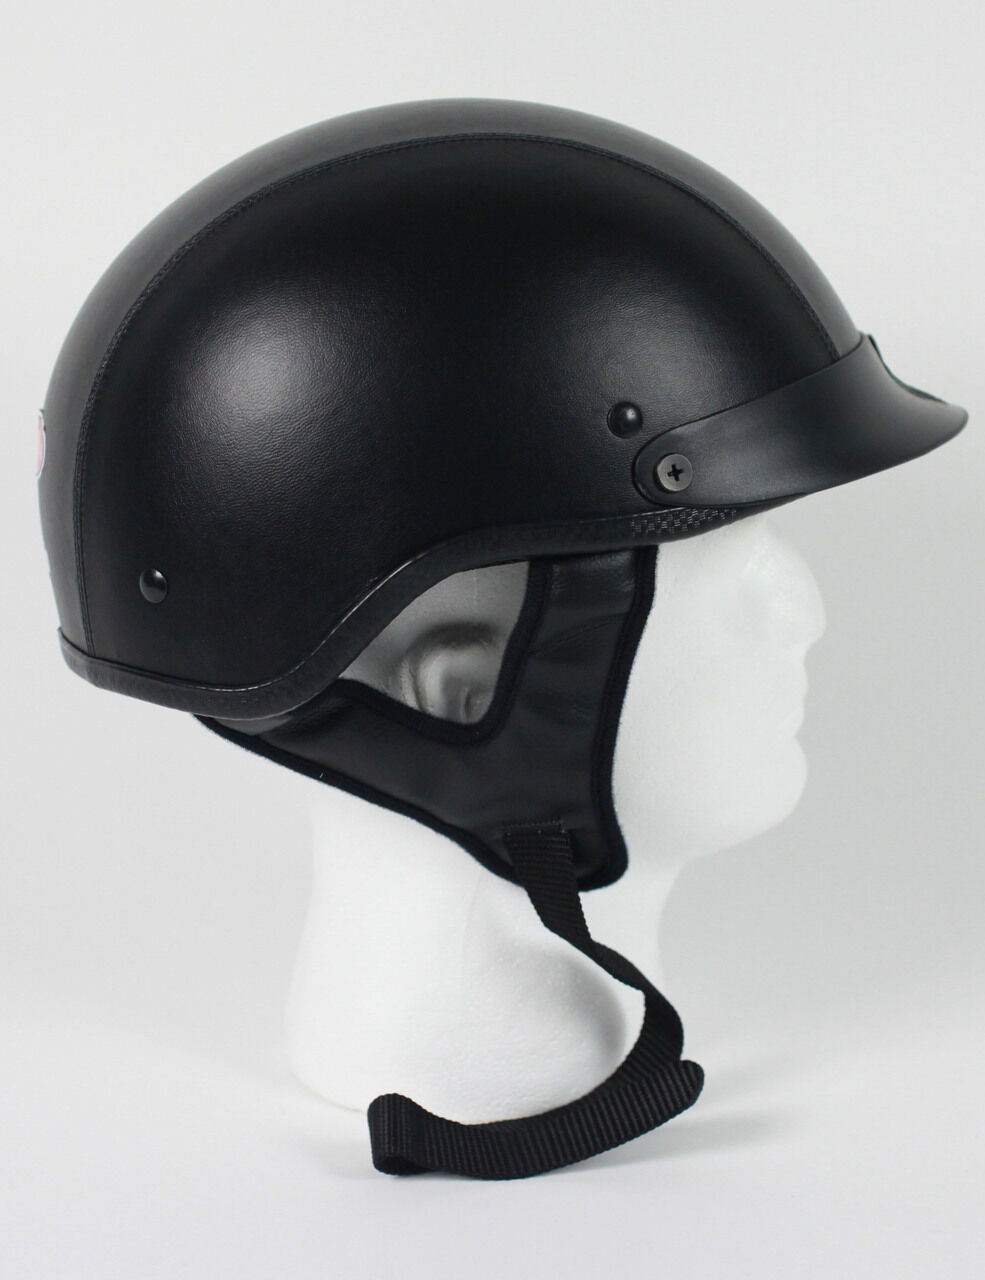 DOT LEATHER SERIES SHORTY MOTORCYCLE HALF HELMET BEANIE HELMETS LIGHTER SHELL